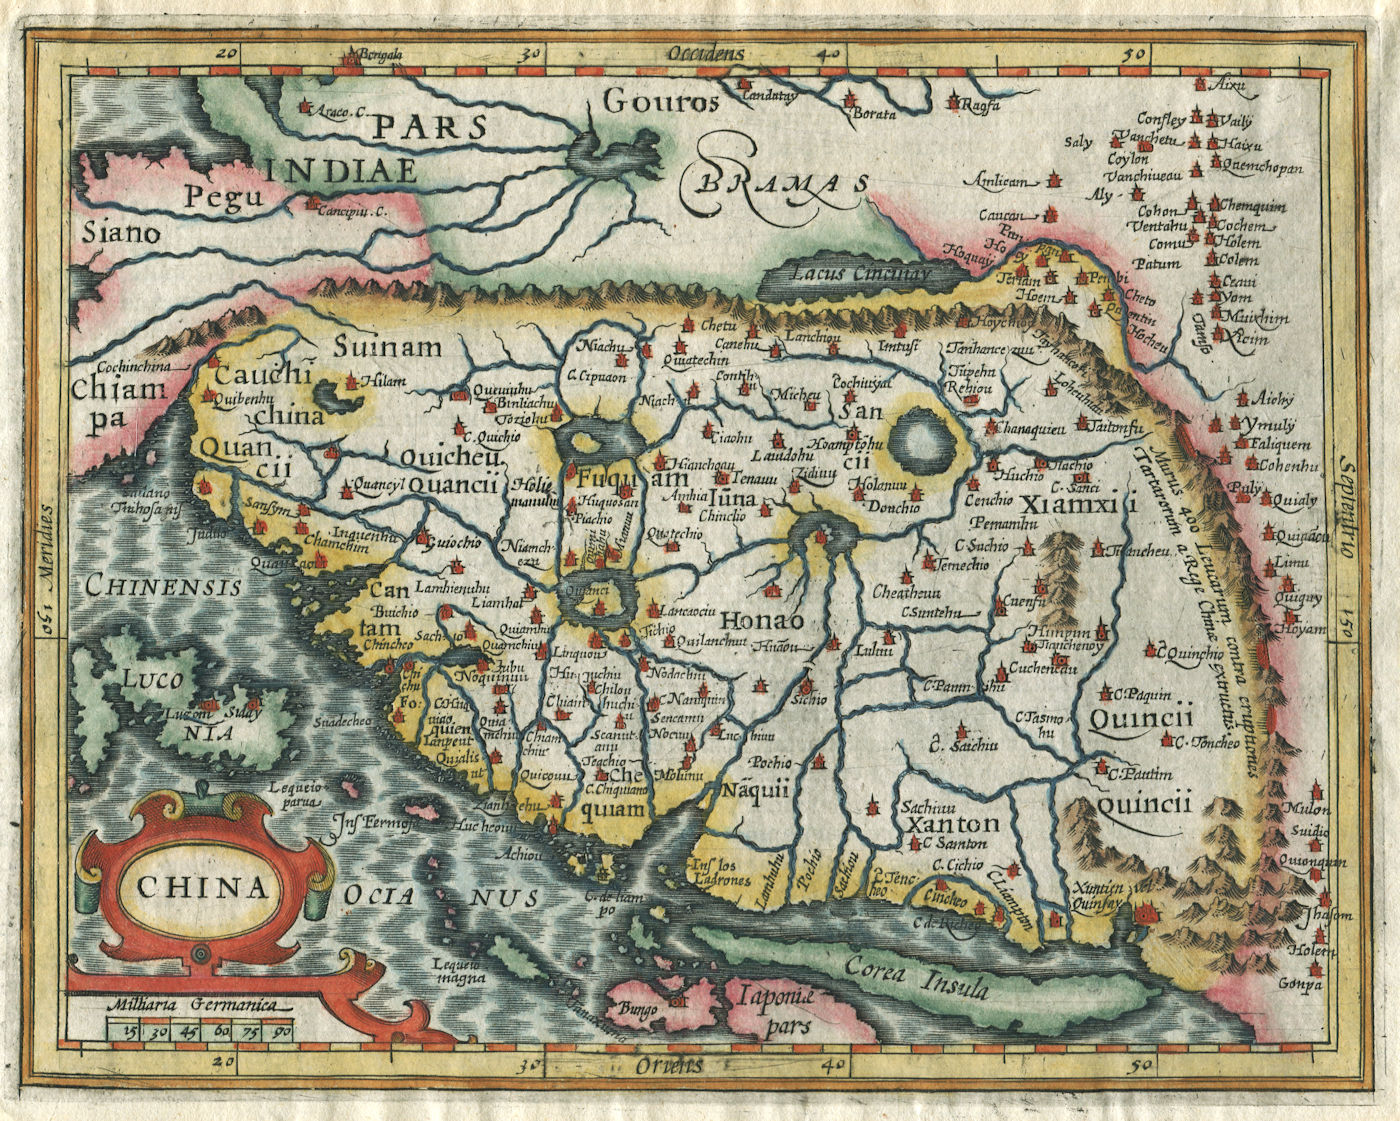 Jodocus Hondius's 'reduced' map of China (Amsterdam, 1607) (collection of Juan José Morales)